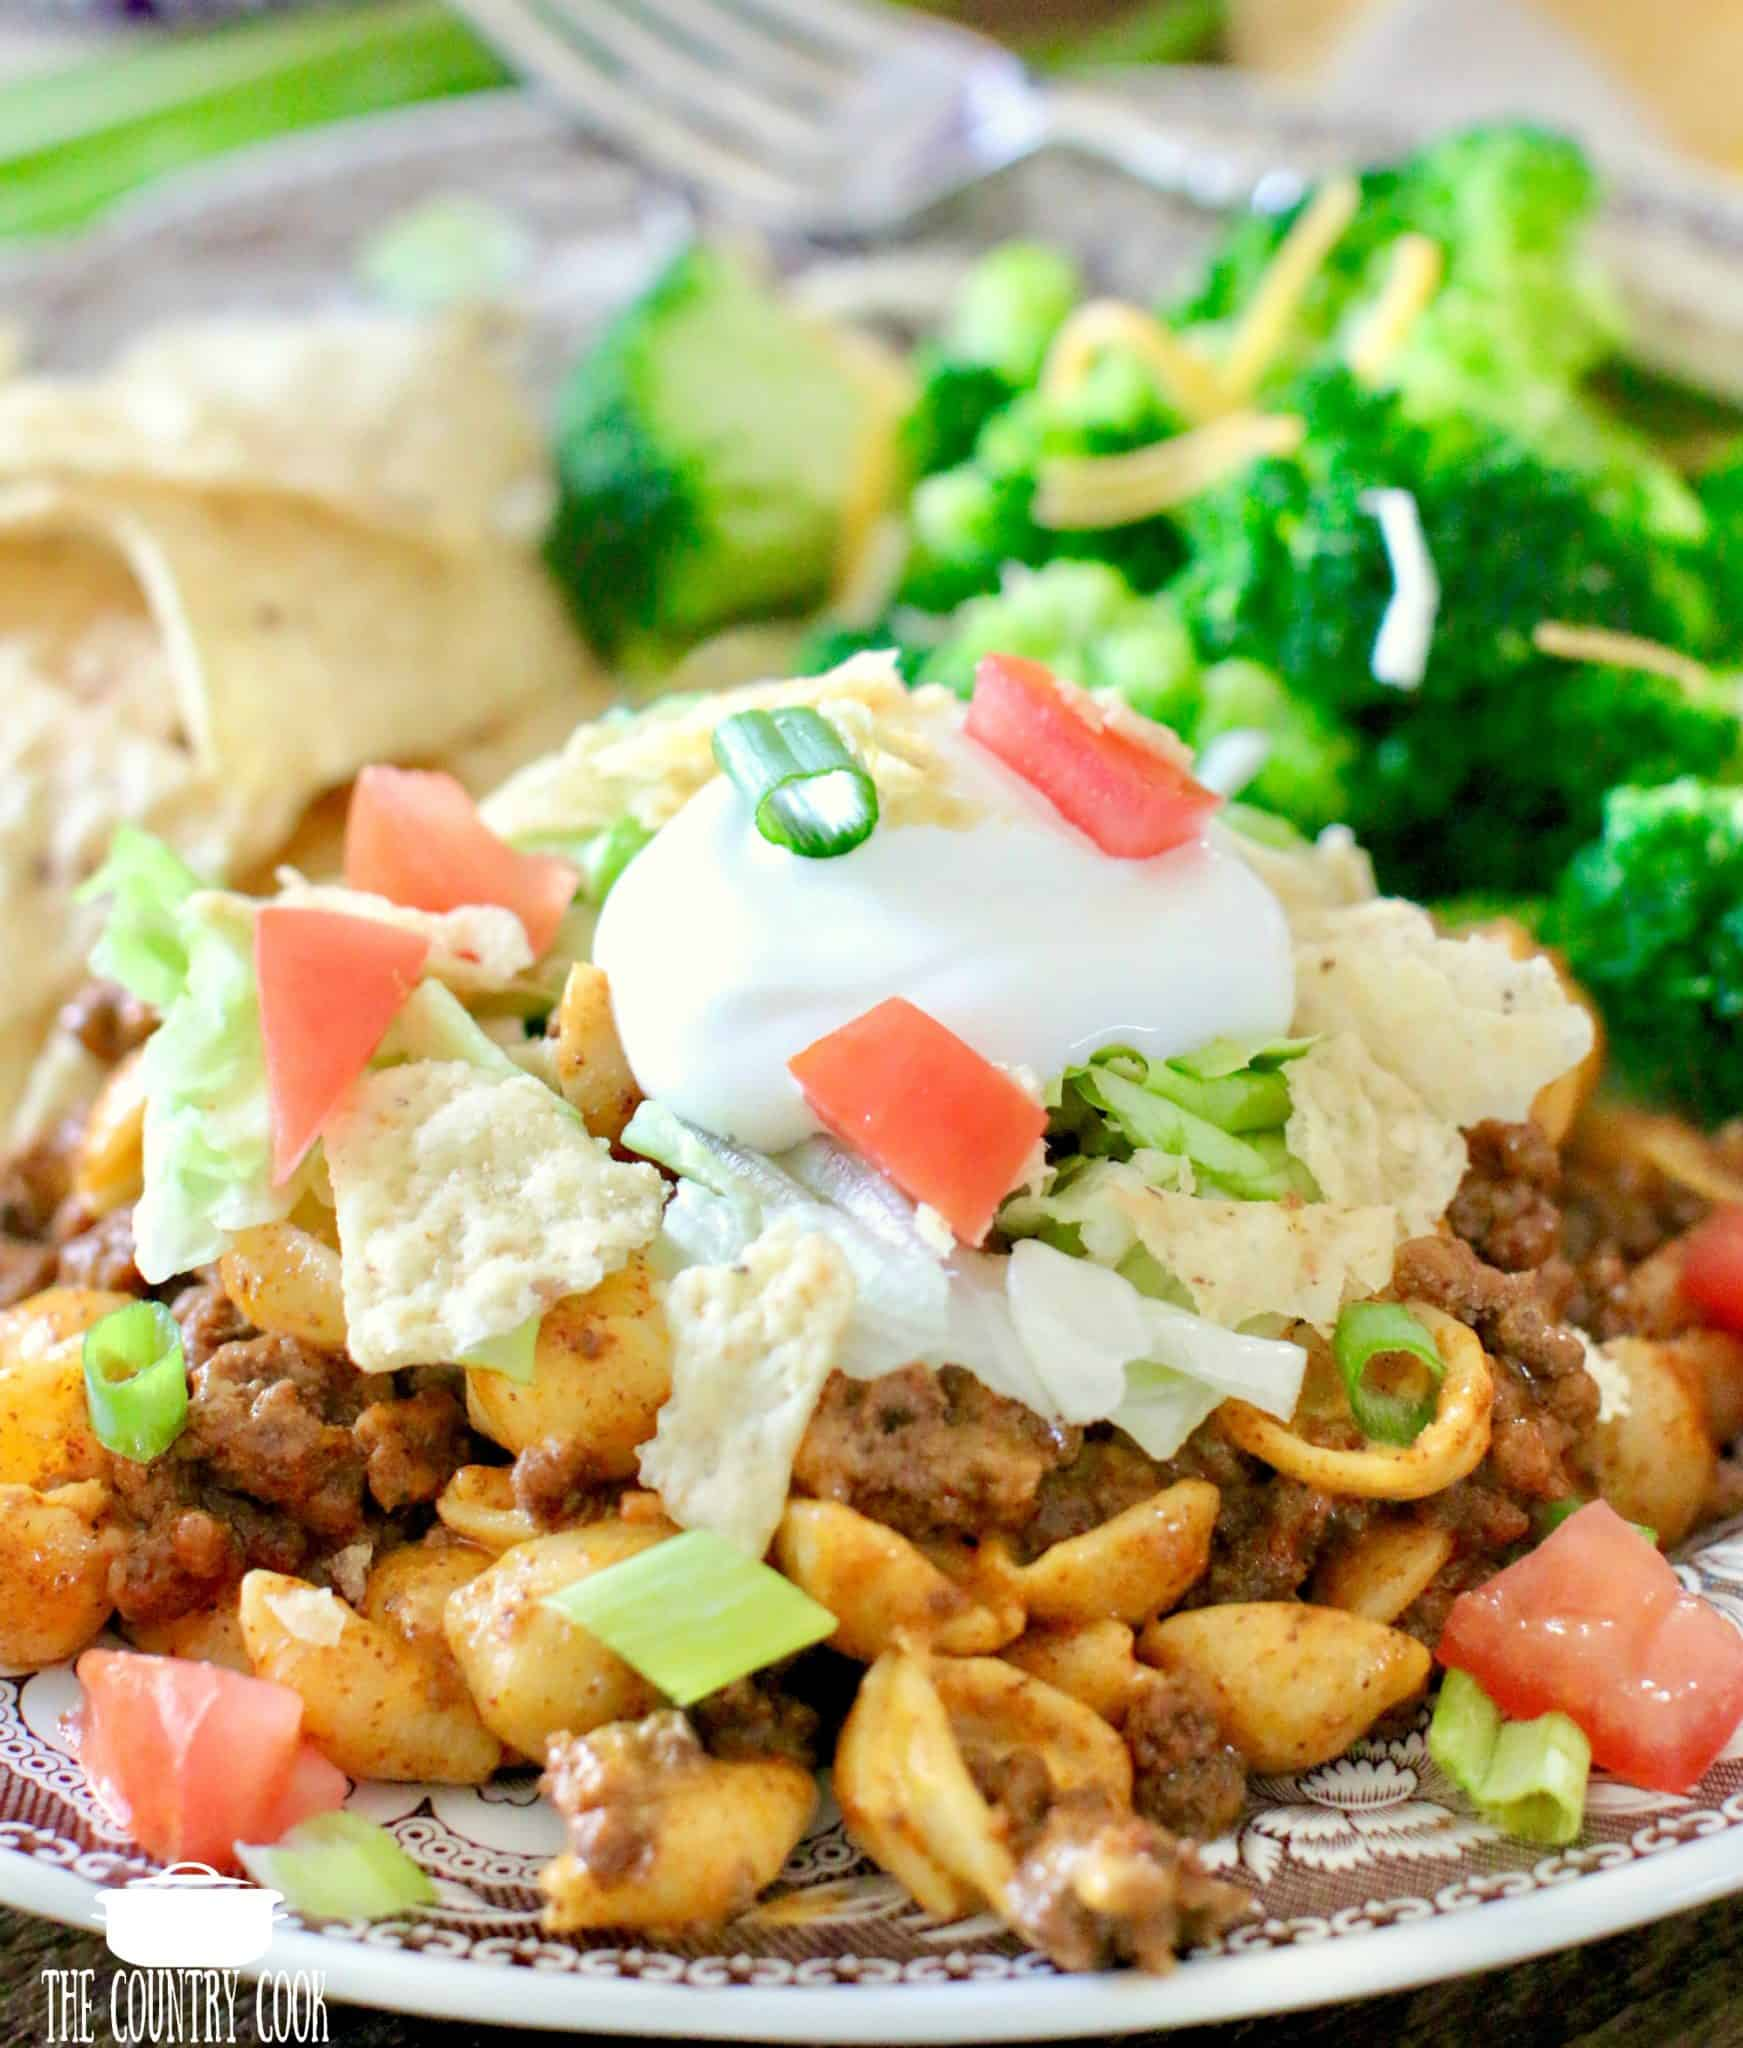 Taco Mac and Cheese topped with lettuce, tomato, tortilla chips and sour cream.